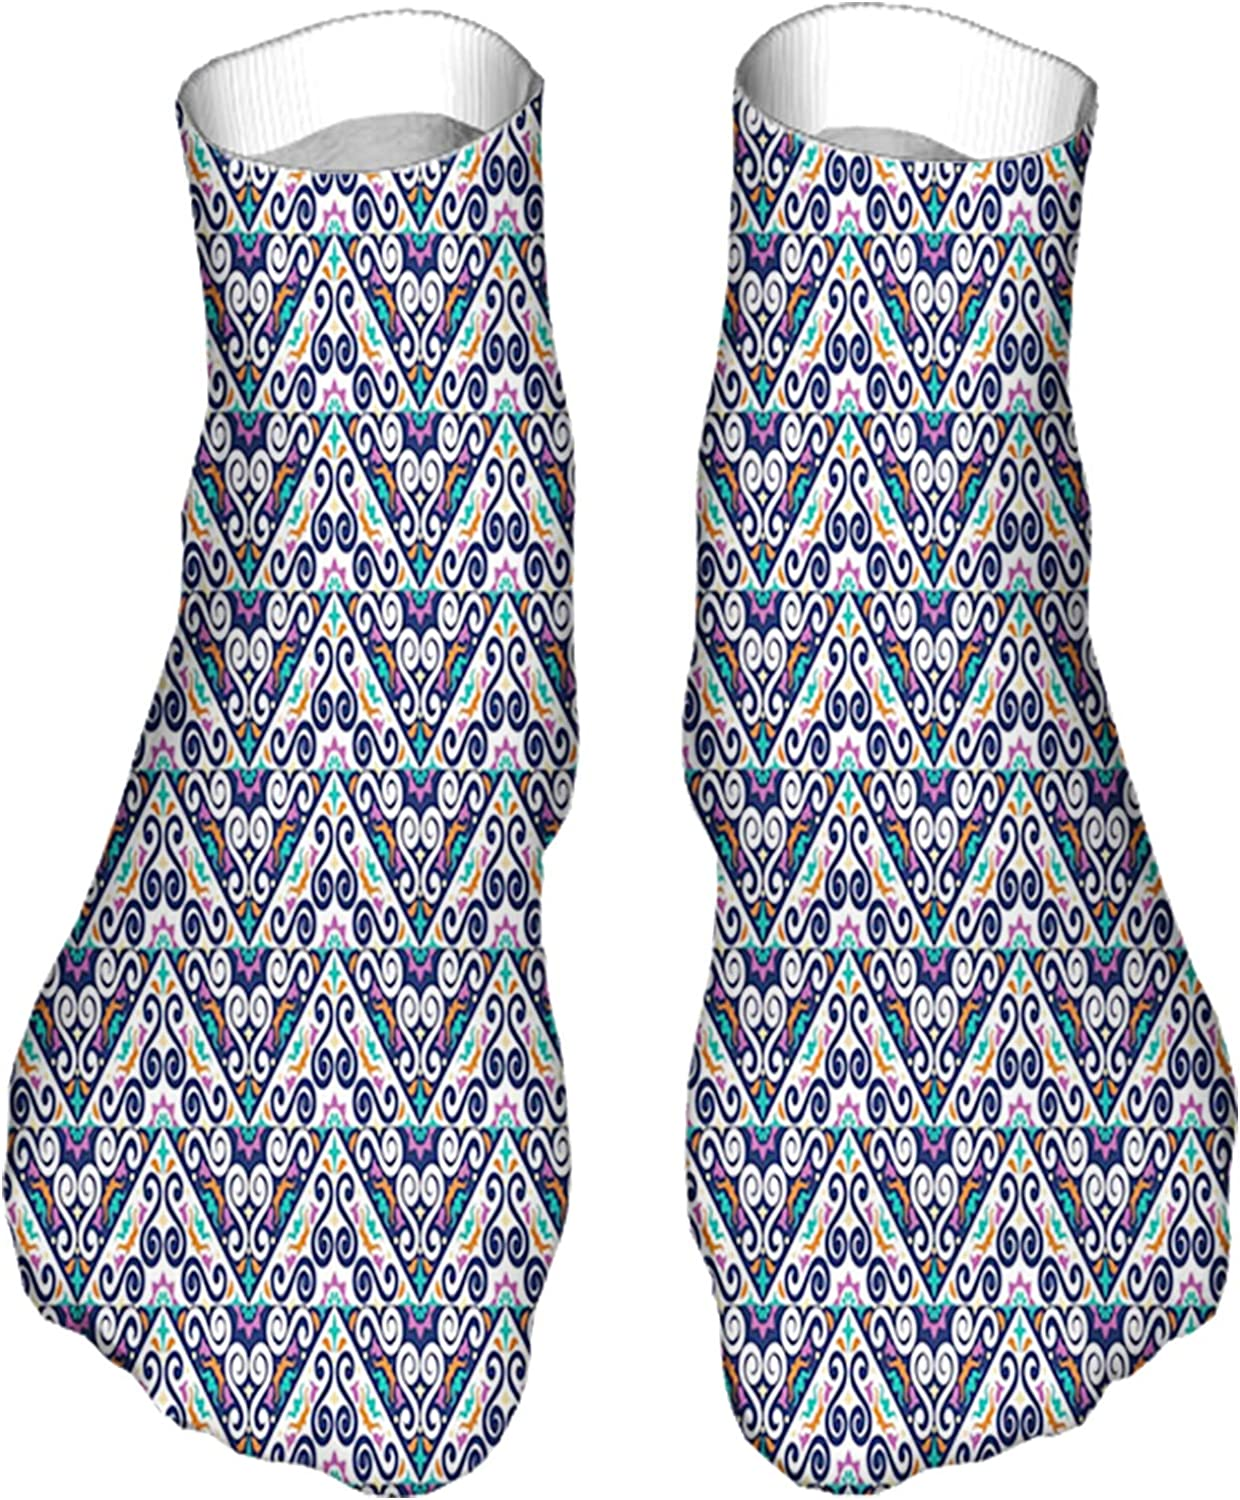 Women's Colorful Patterned Unisex Low Cut/No Show Socks,Colorful Abstract Folk Ornamental Triangles and Swirls